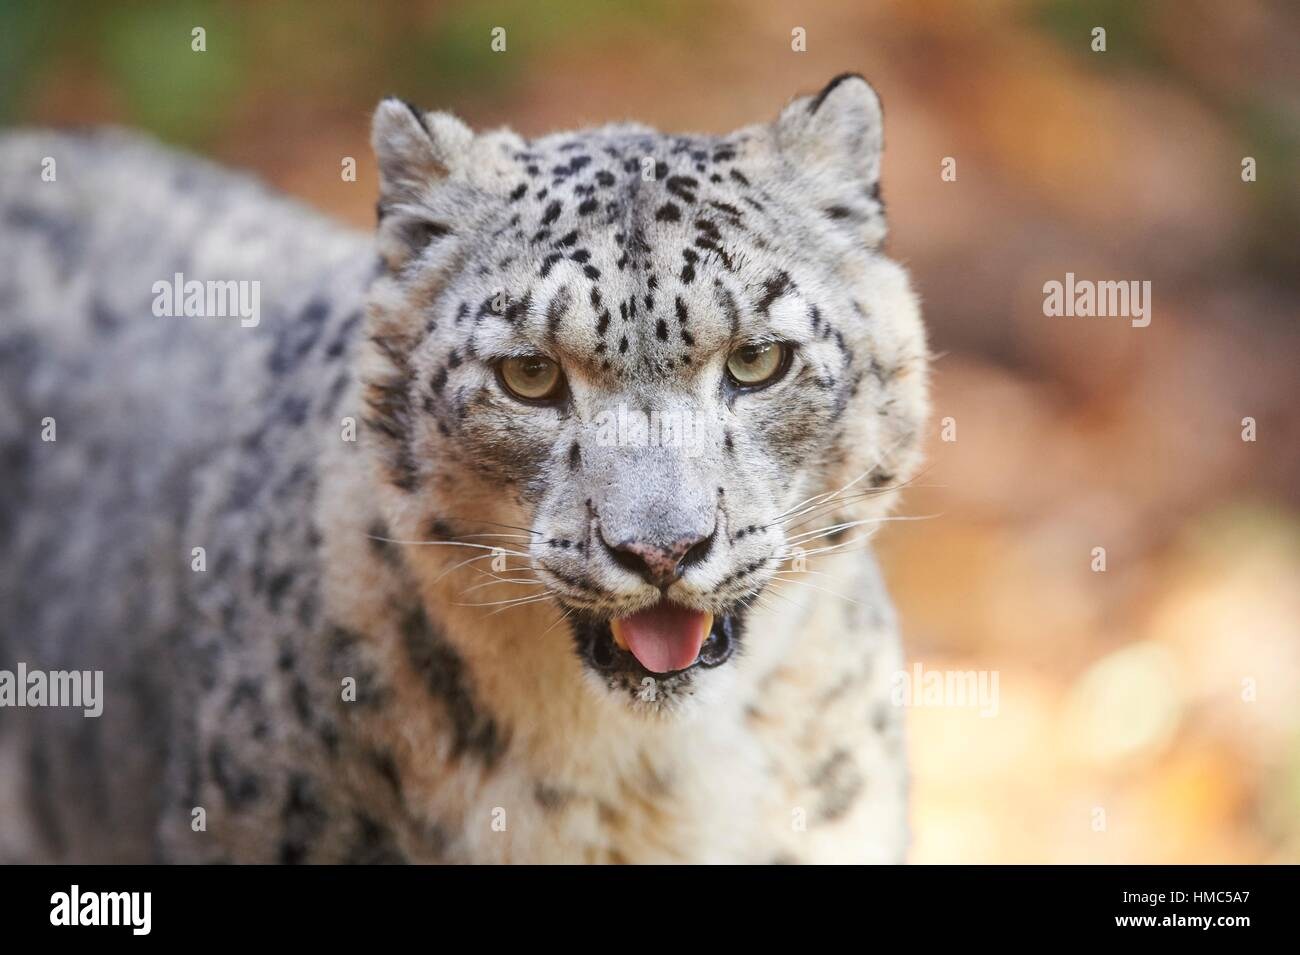 Portrait of a snow leopard (Panthera uncia syn. Uncia uncia) in autumn. Captive. Germany. - Stock Image